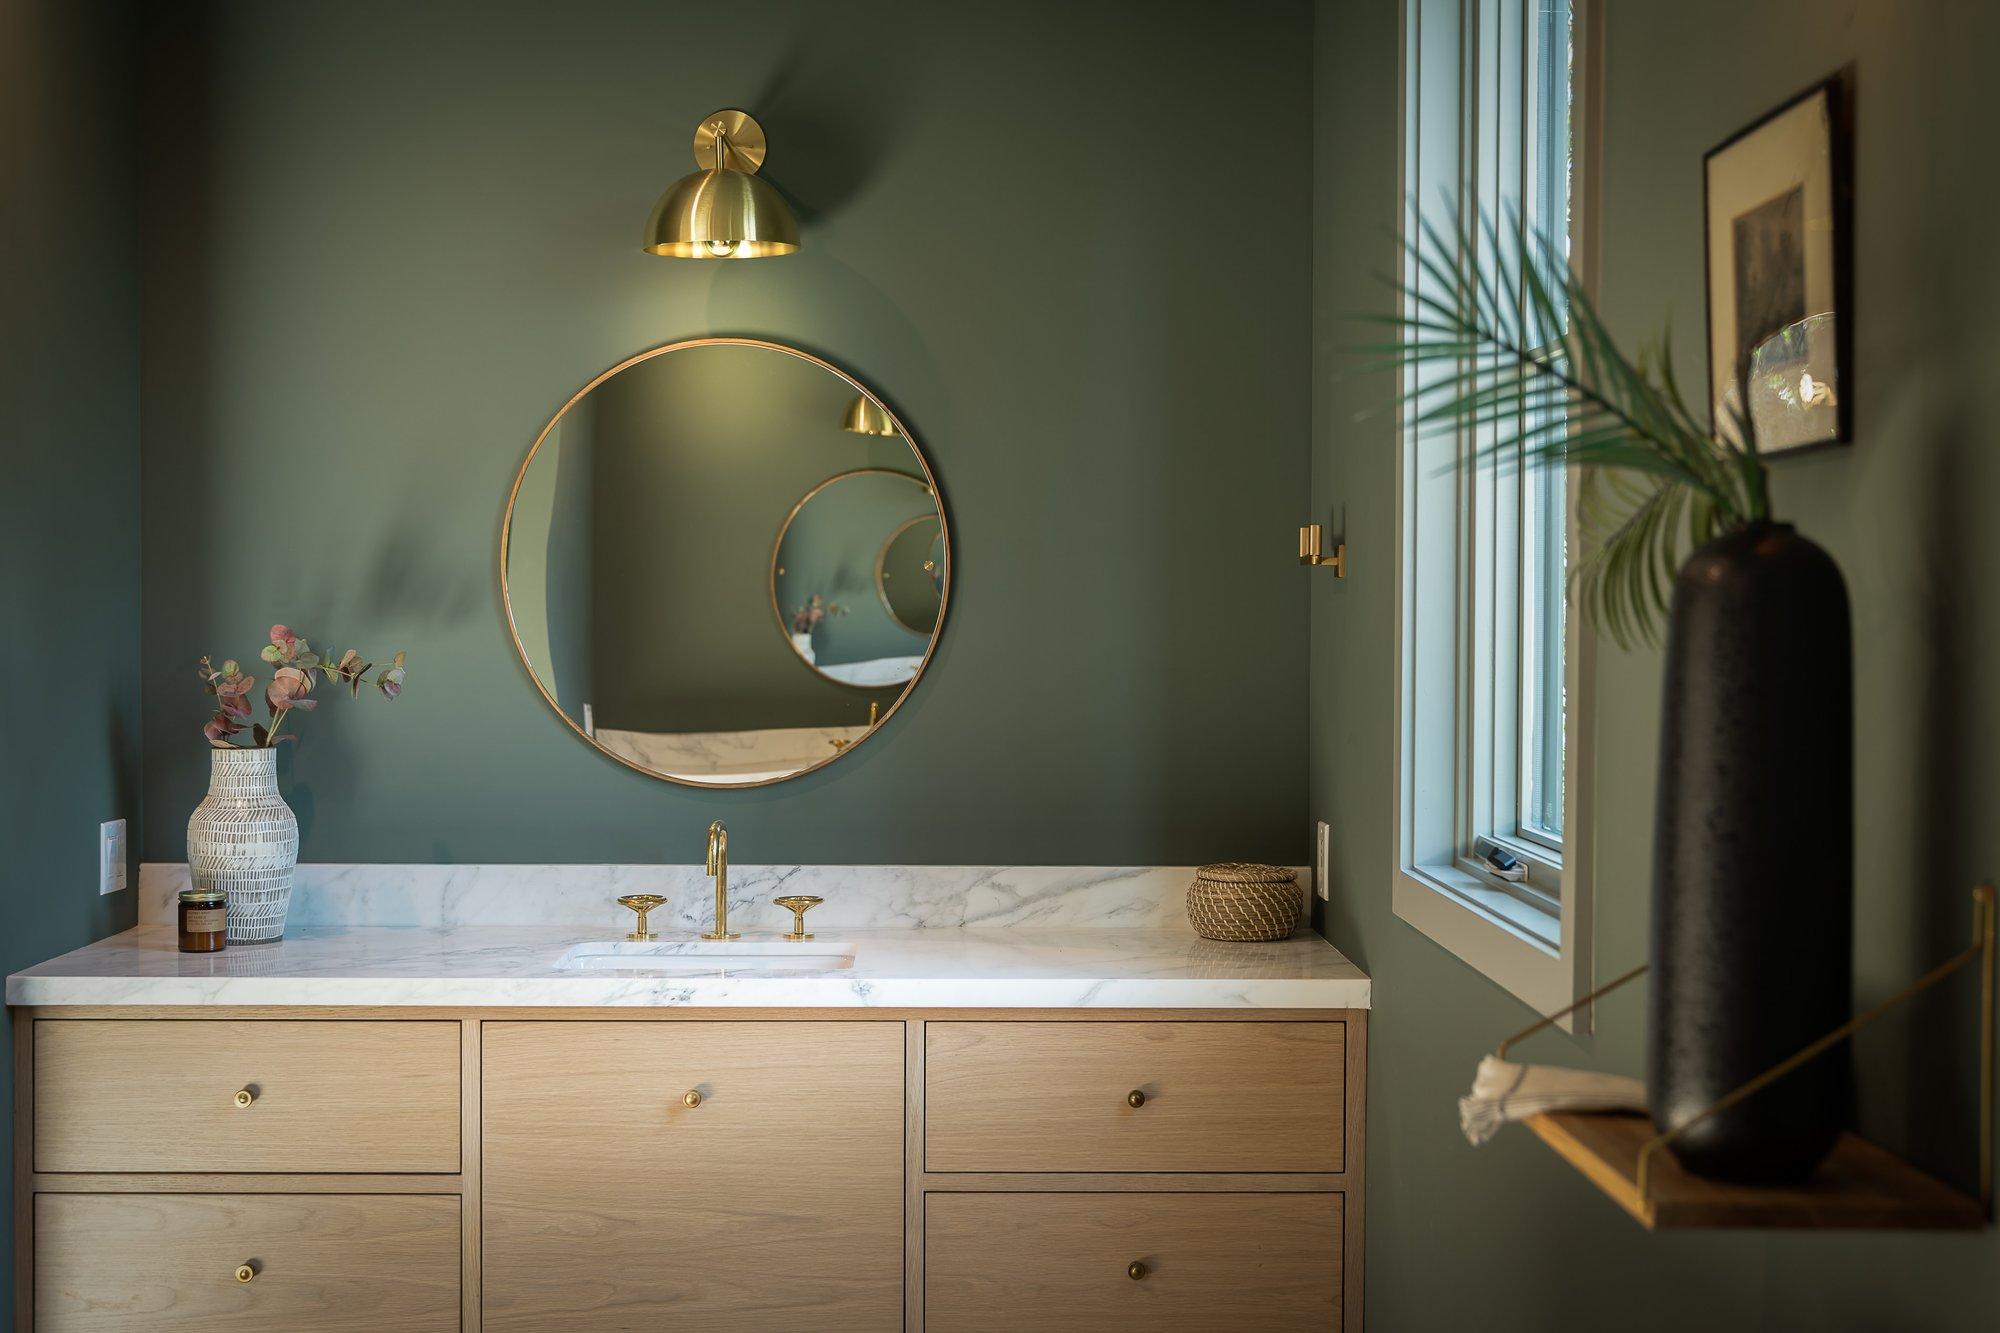 Bathroom vanity with round mirror and green walls